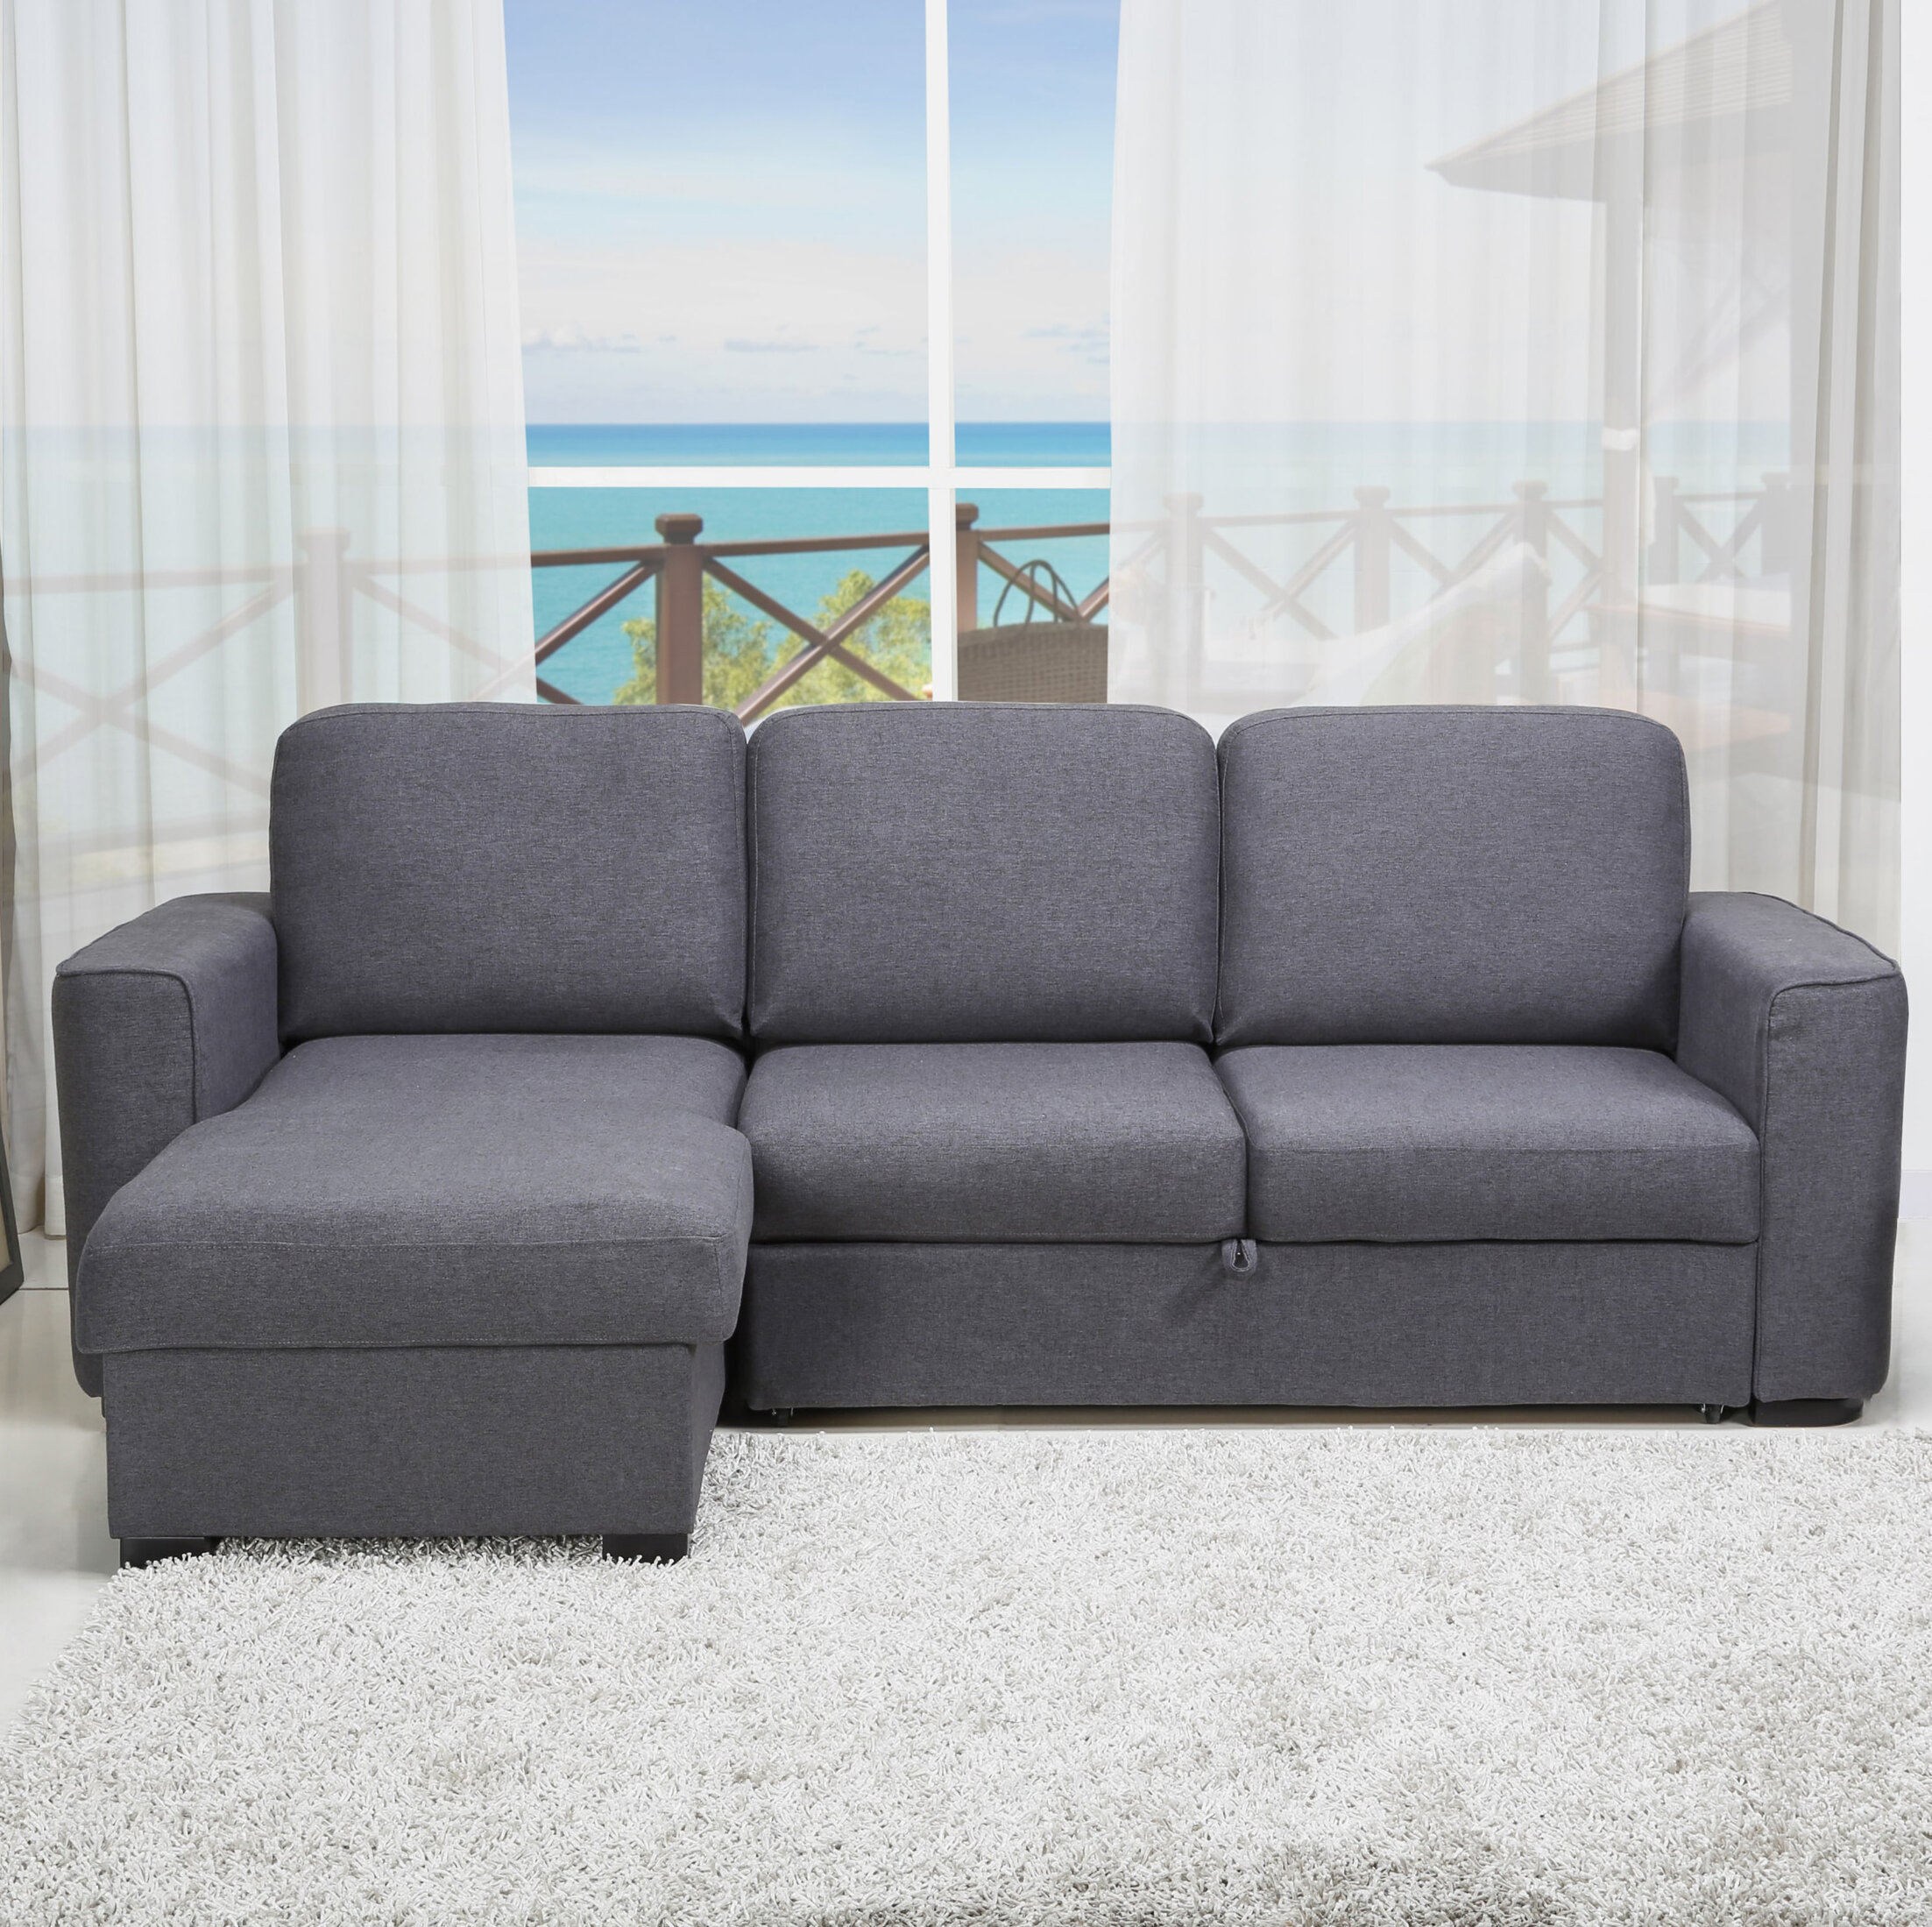 singular sectional gray com furniture grey coral configurable with inspirations graygrey spaces living tempurpediceper of sofas sleeper boyslashfriend full dark amazon size photo sofa queen